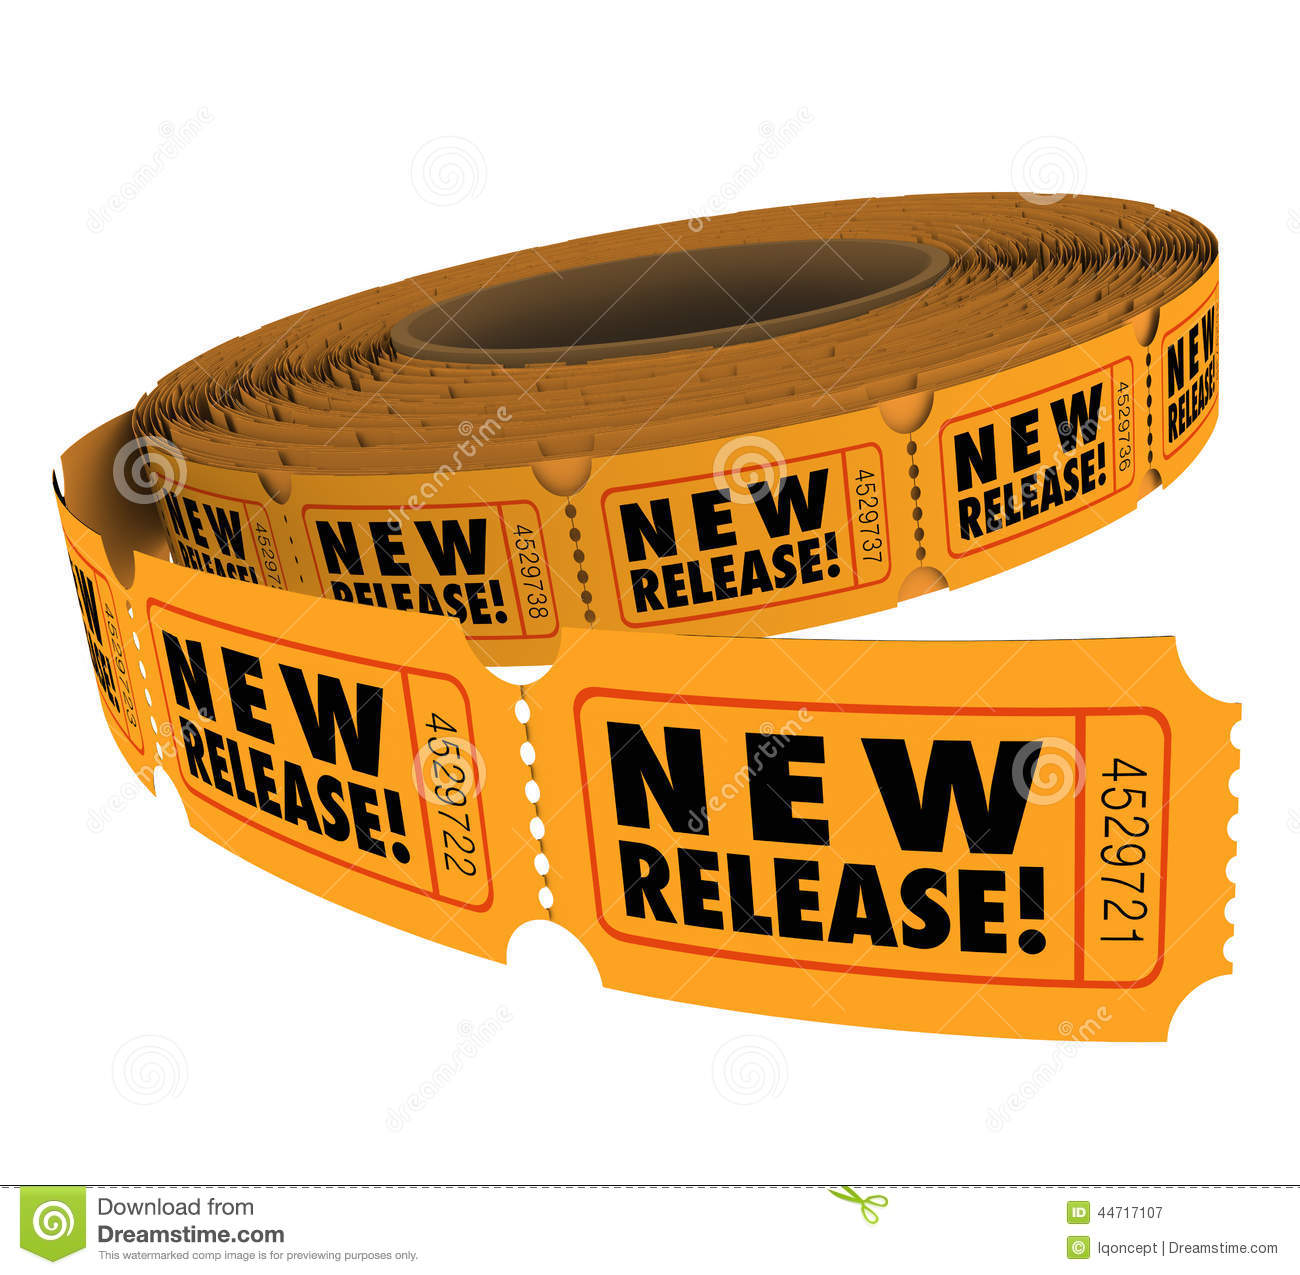 new release product tickets debut premiere passes stock clip art movie tickets and popcorn clip art movie ticket stub